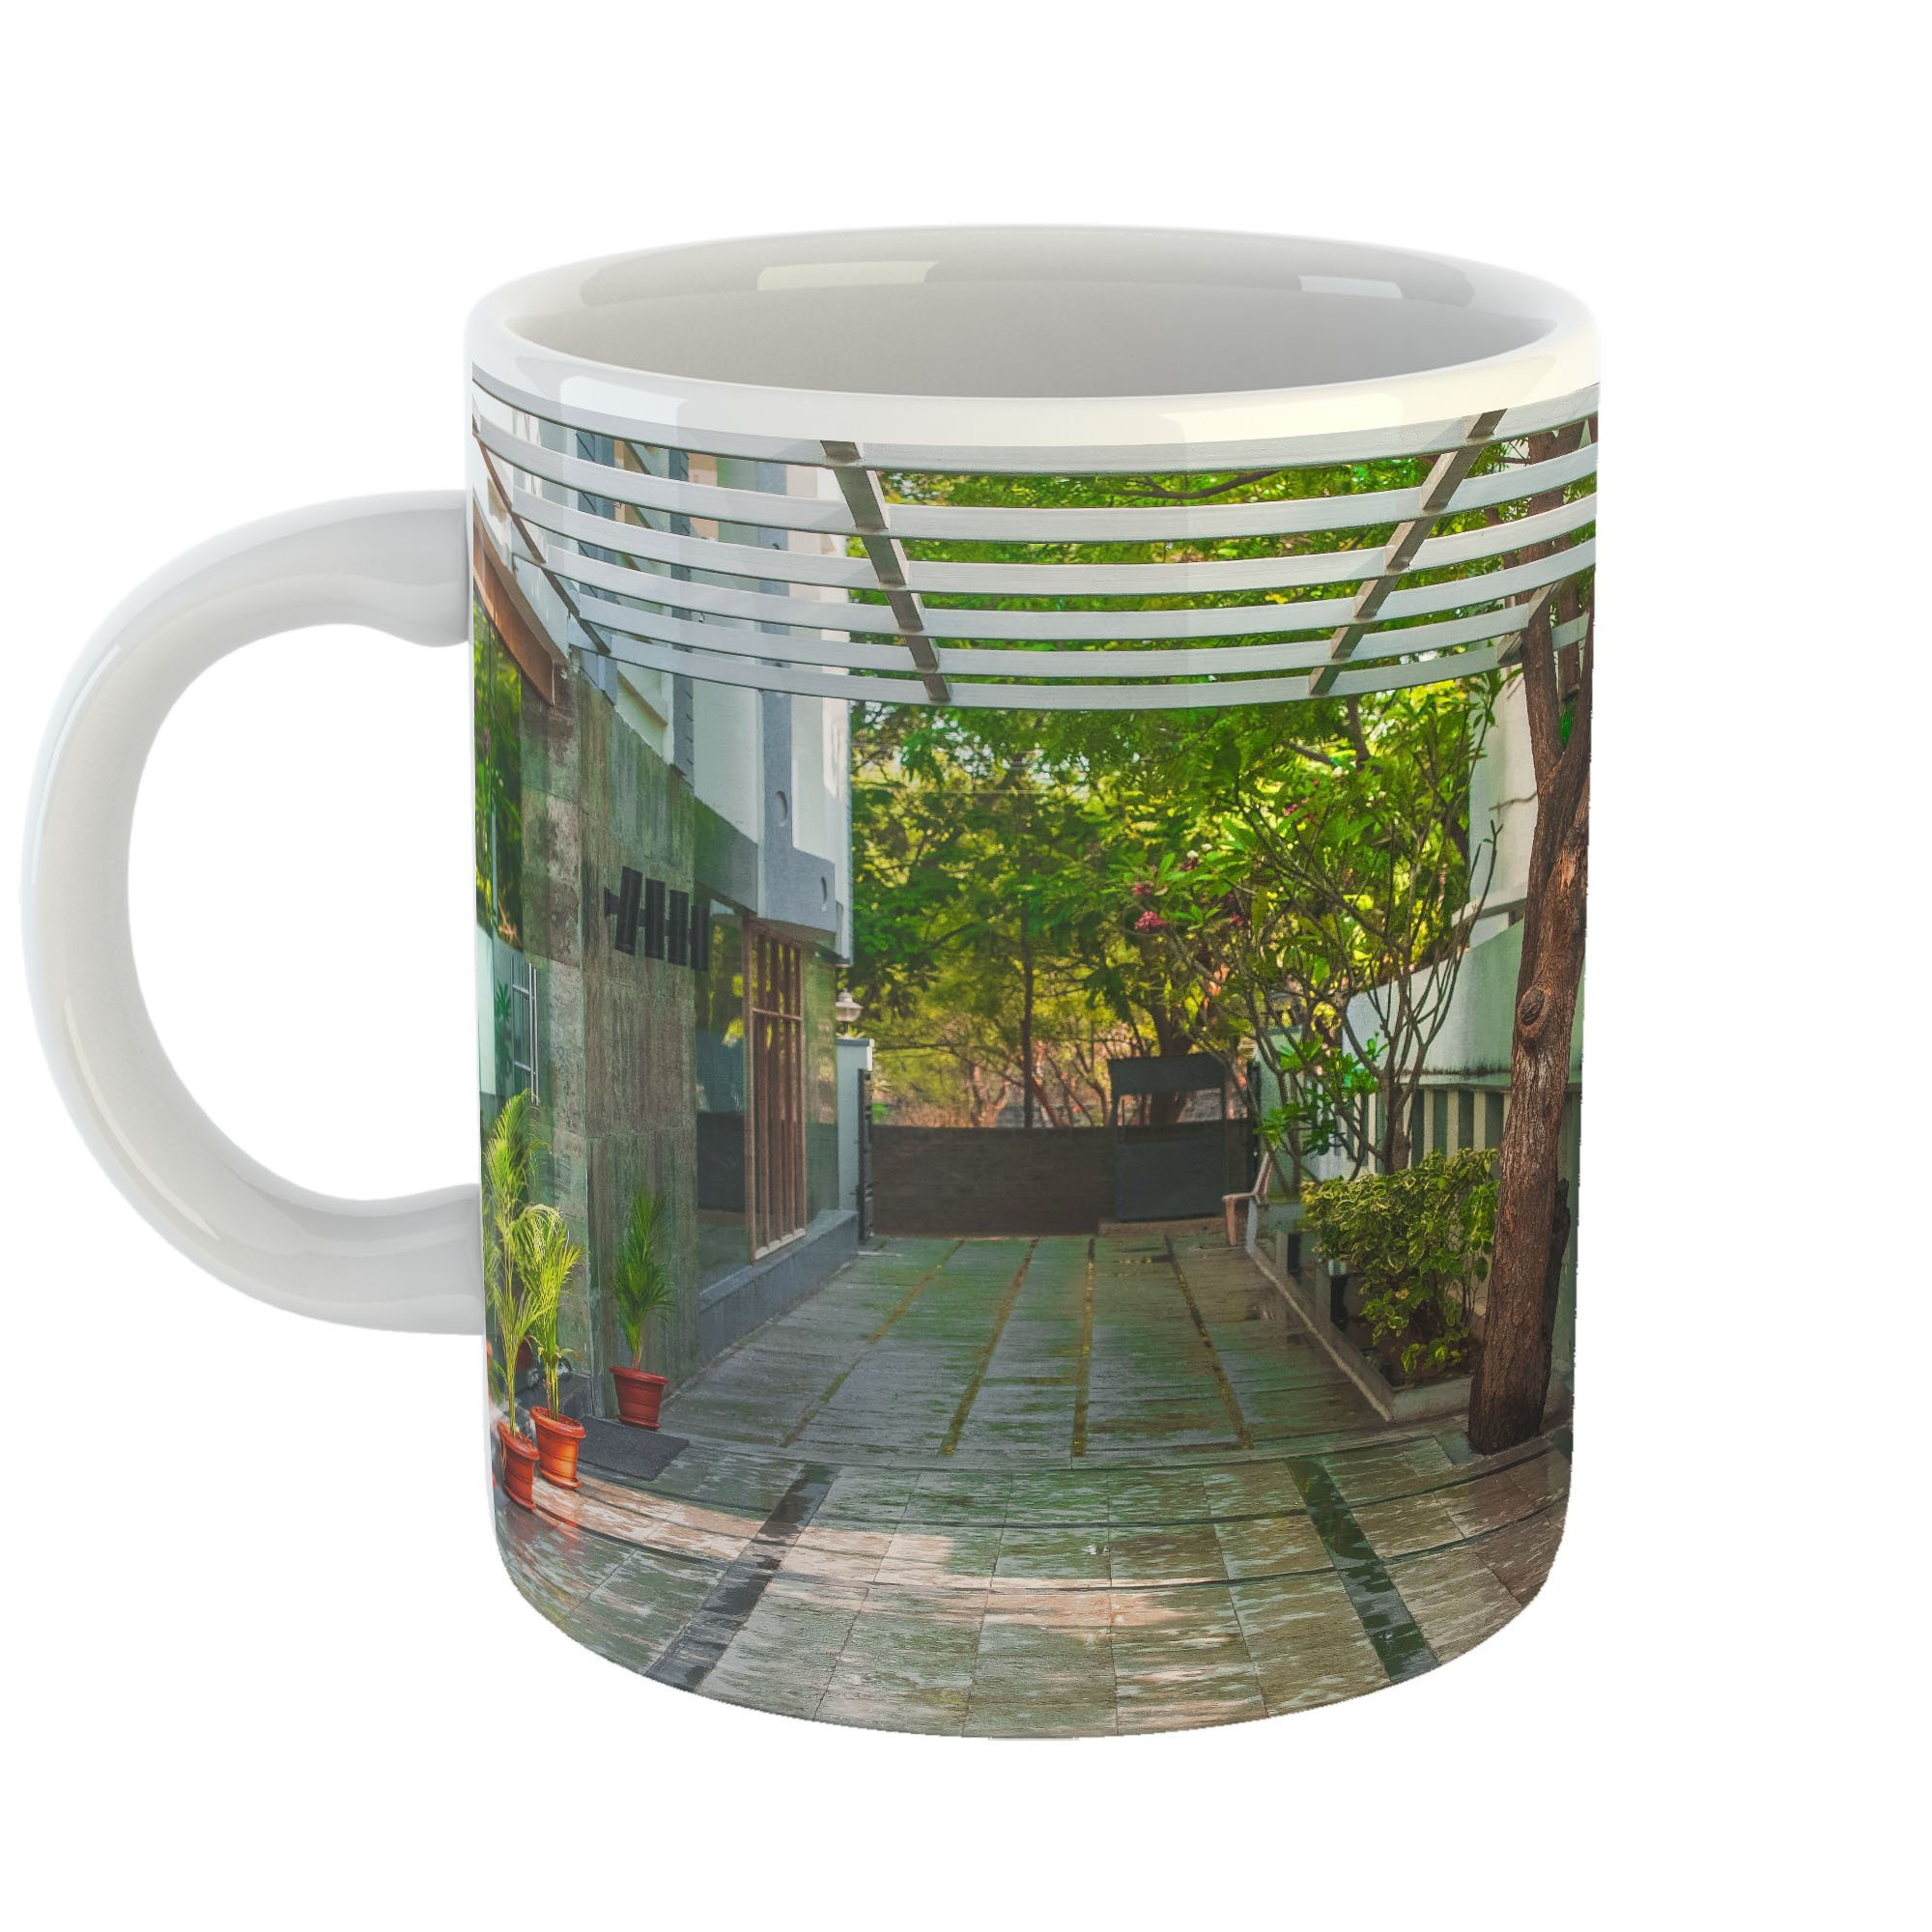 Westlake Art - Landscape Hotel - 11oz Coffee Cup Mug - Modern Picture Photography Artwork Home Office Birthday Gift - 11 Ounce (BA13-189C9)